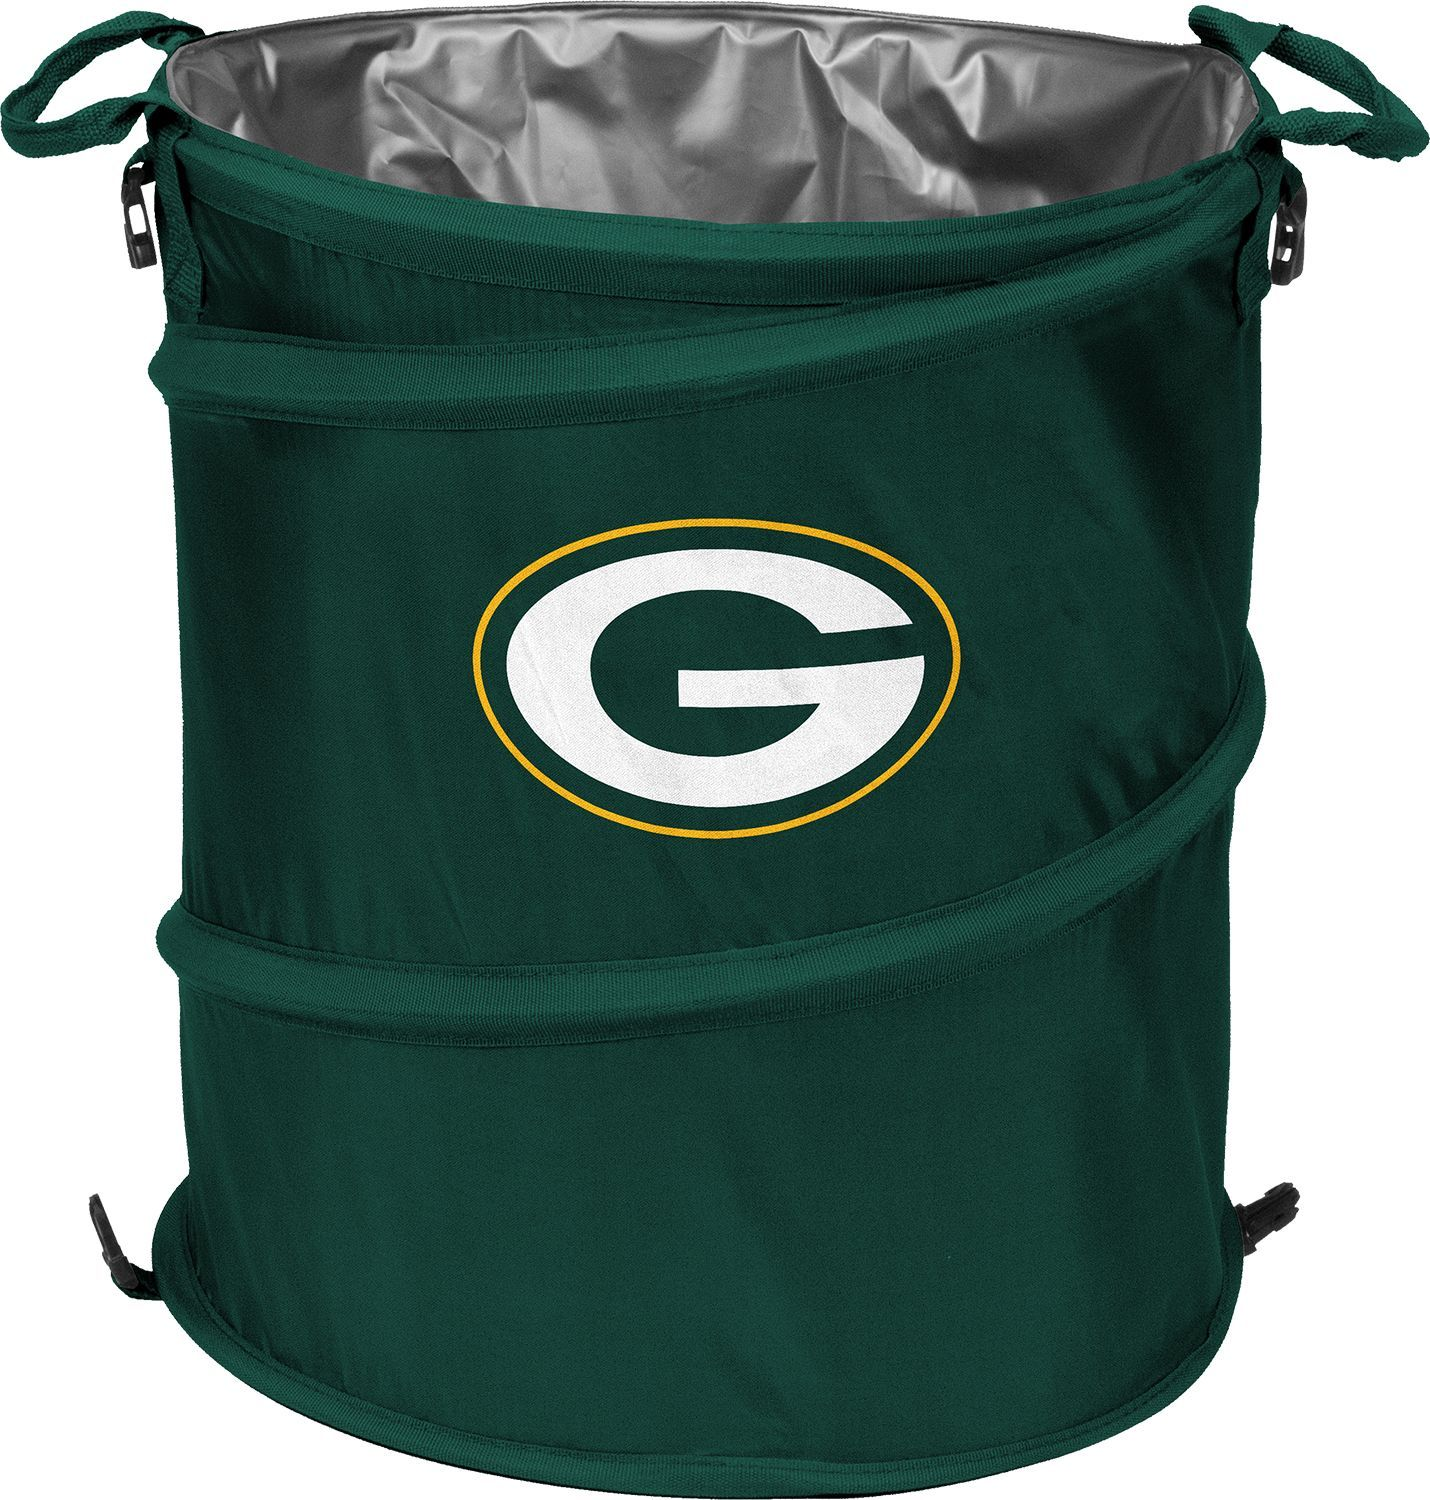 Green Bay Packers Trash Can Cooler Soft Sided Coolers Nfl Nfl San Francisco